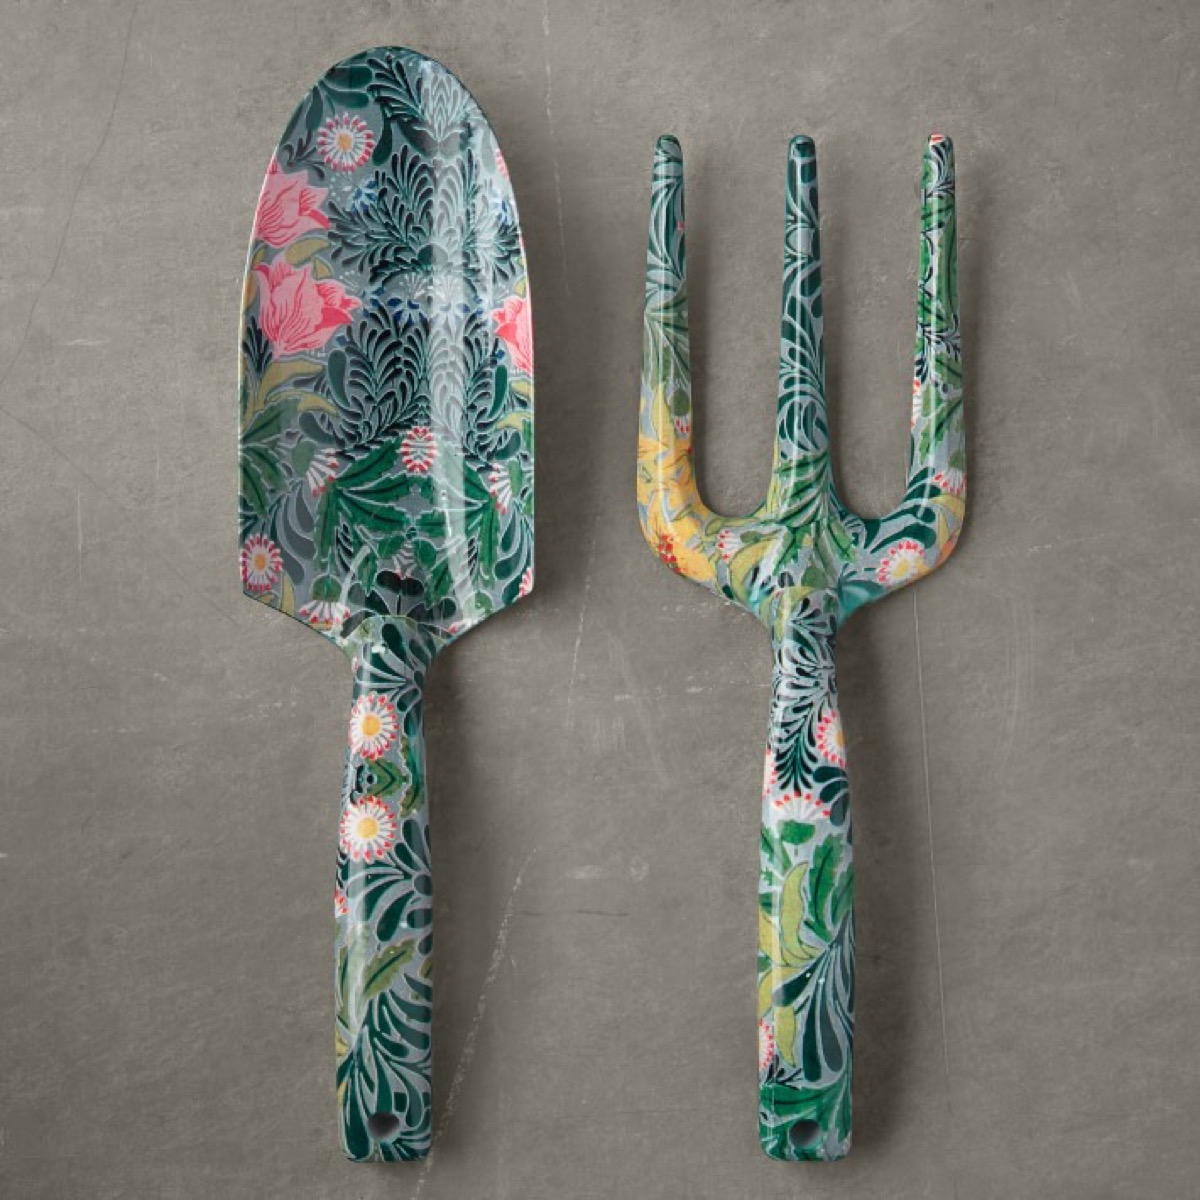 floral gardening tools from williams sonoma